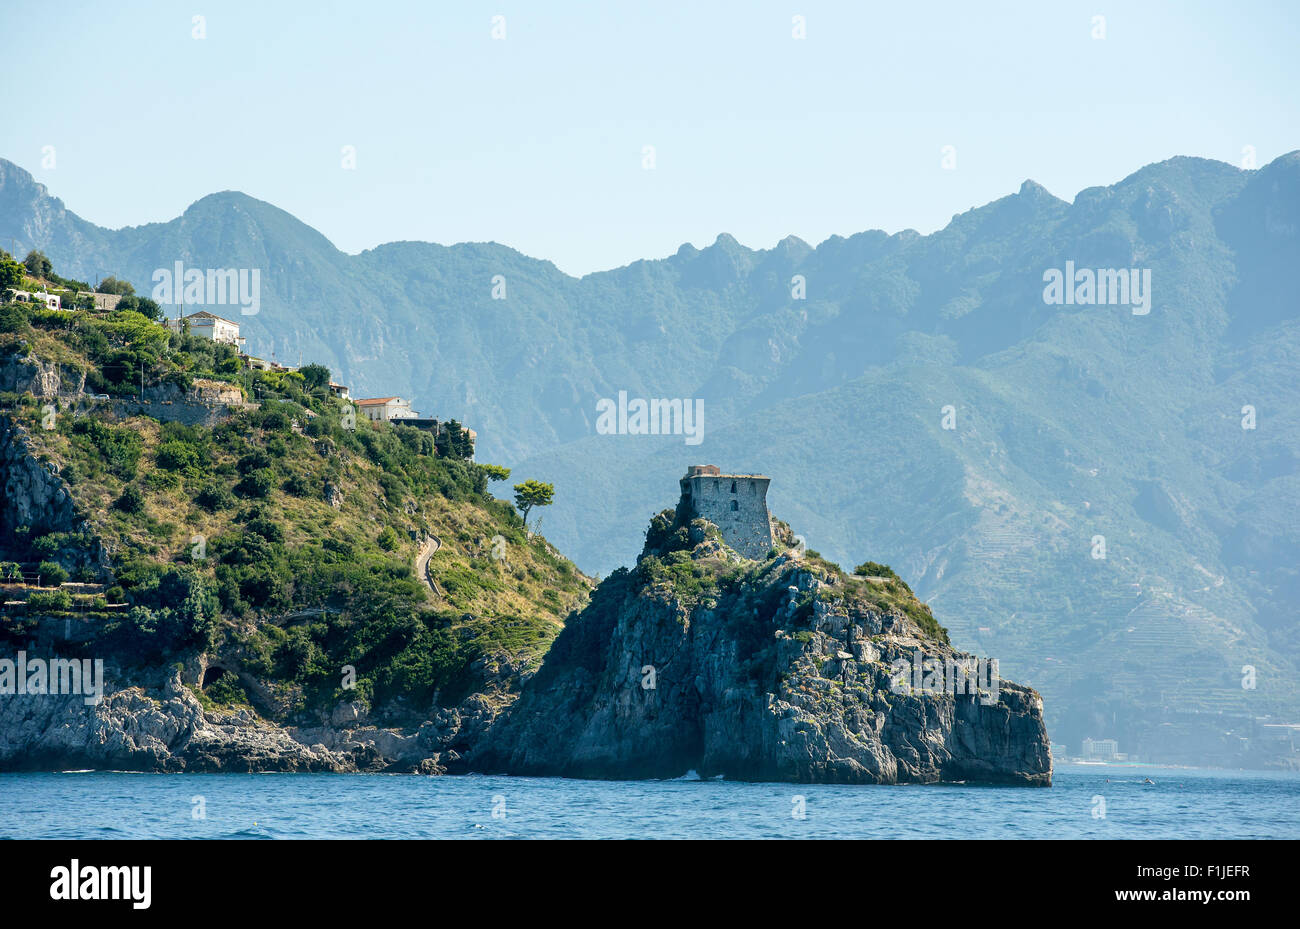 Watchtower in the town of Conca dei Marini on Amalfi Coast in the province of Salerno, Italy - Stock Image